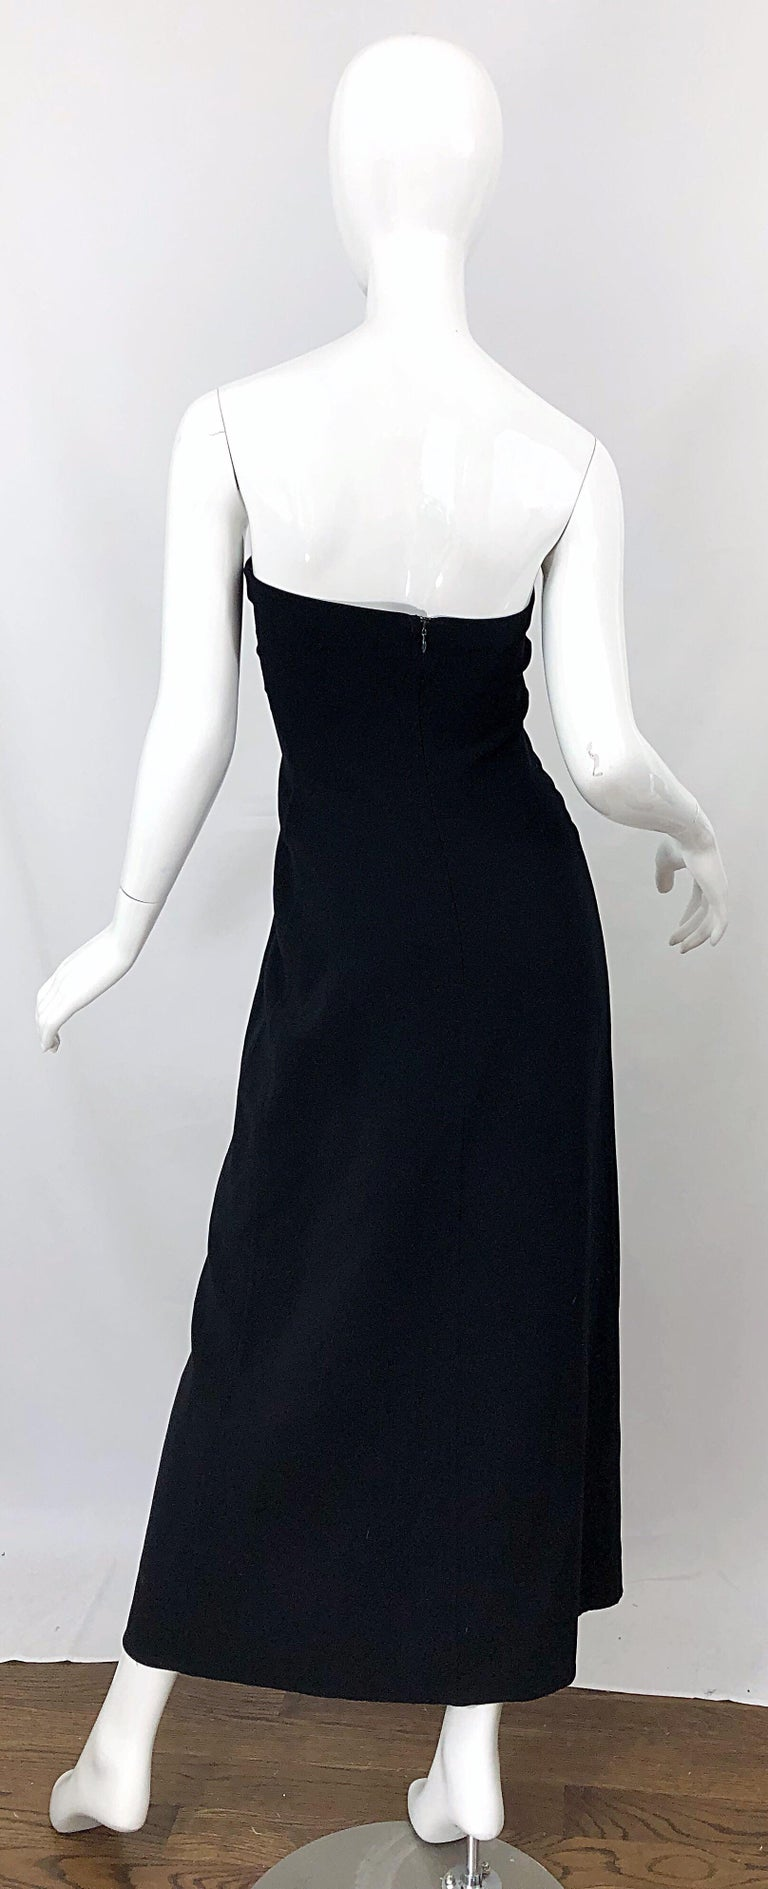 1990s Donna Karan New York Size 4 Black Strapless Vintage 90s Gown Maxi Dress In Excellent Condition For Sale In Chicago, IL